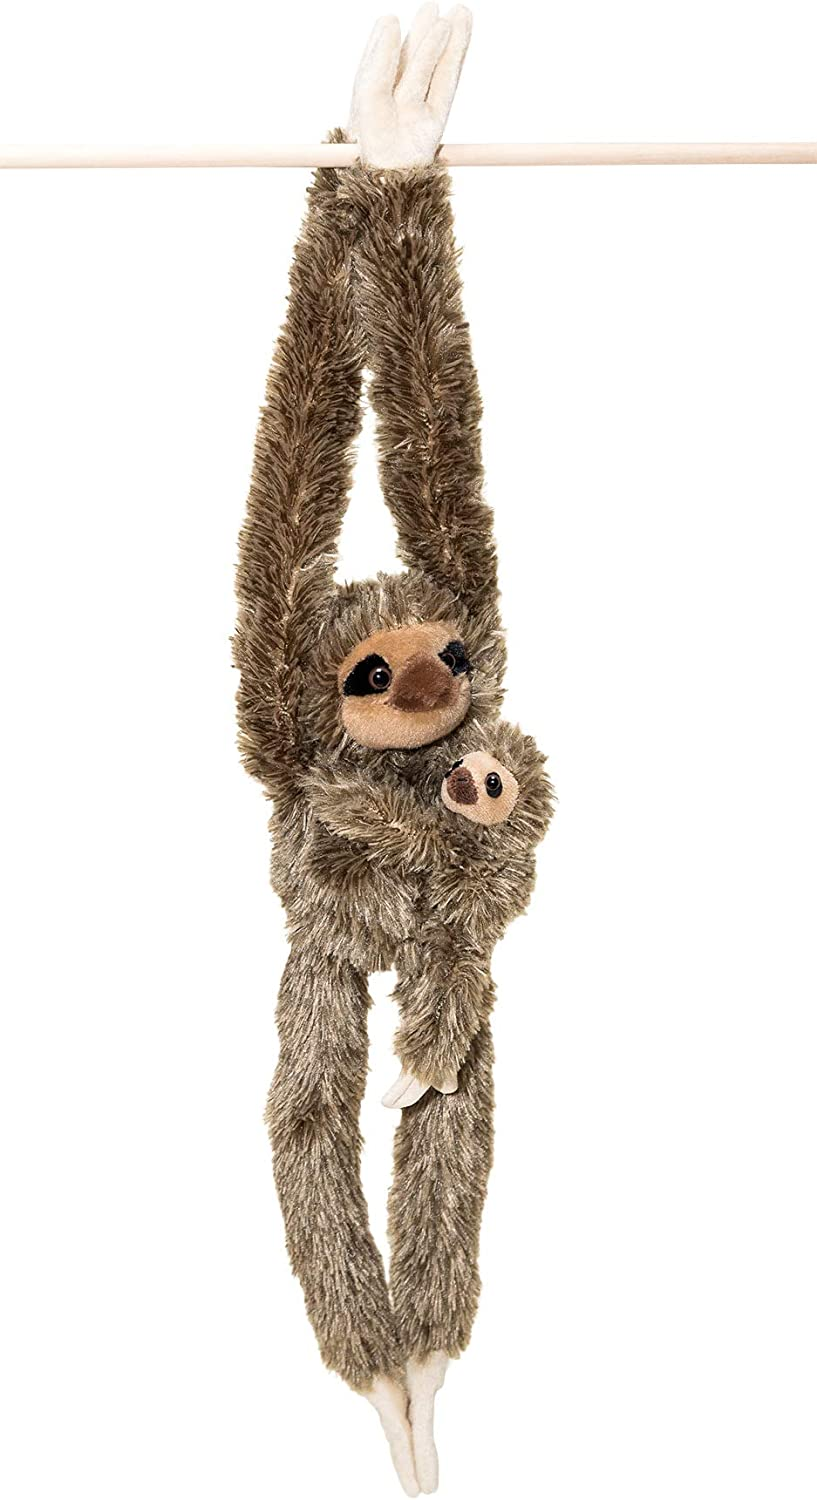 32-Inch Hanging Sloth Stuffed Animal With Baby - Ultra Soft Plush Design With Hands And Feet That Connect - Realistic Looking Three Toed Sloths - Bring These Popular Sloths Home To Kids Ages 3+